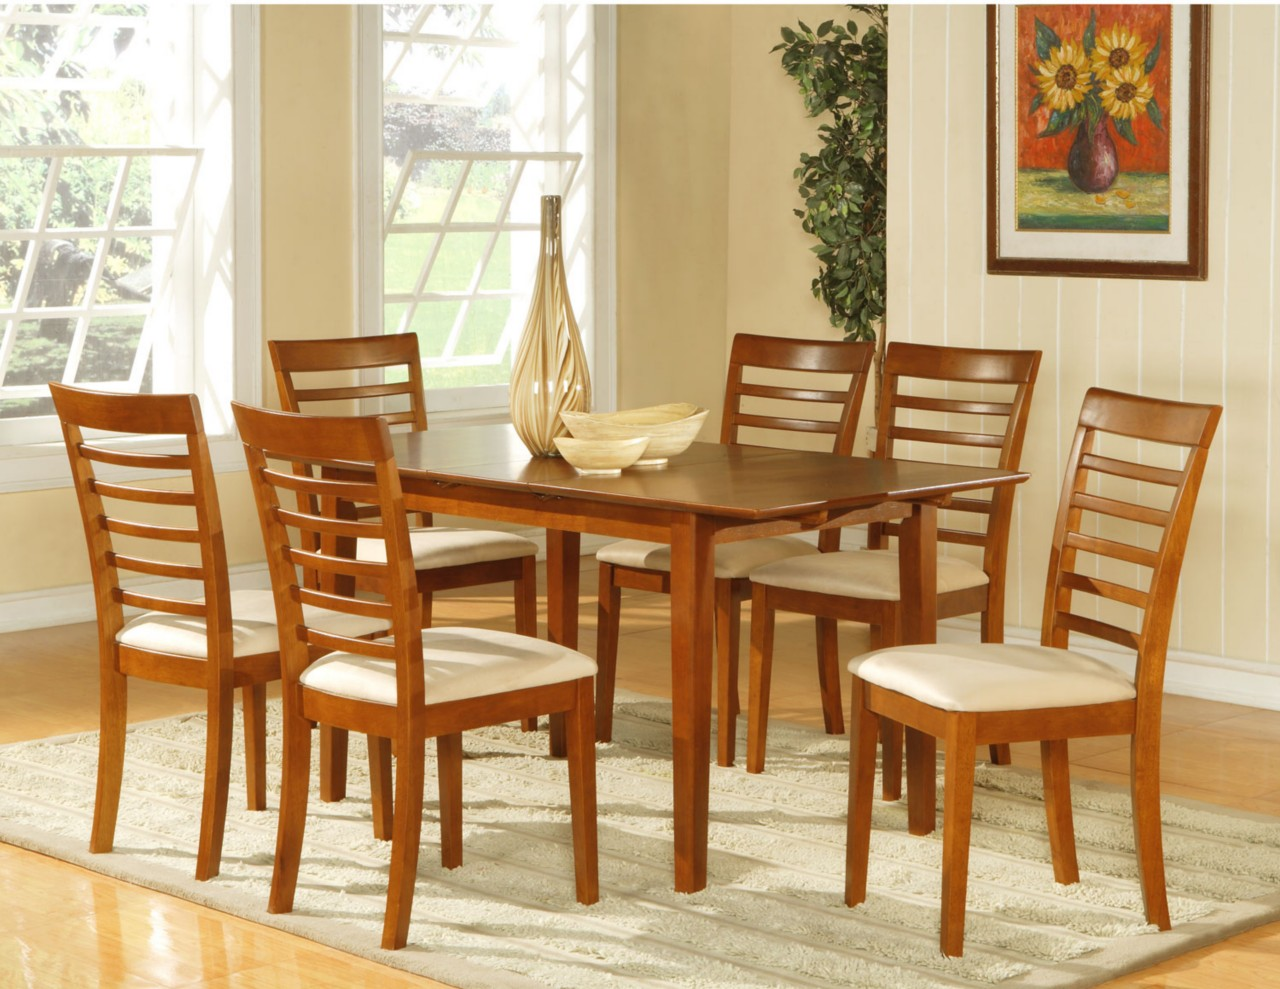 7pc dining room dinette set table and 6 chairs brown ebay for Dining set with bench and chairs